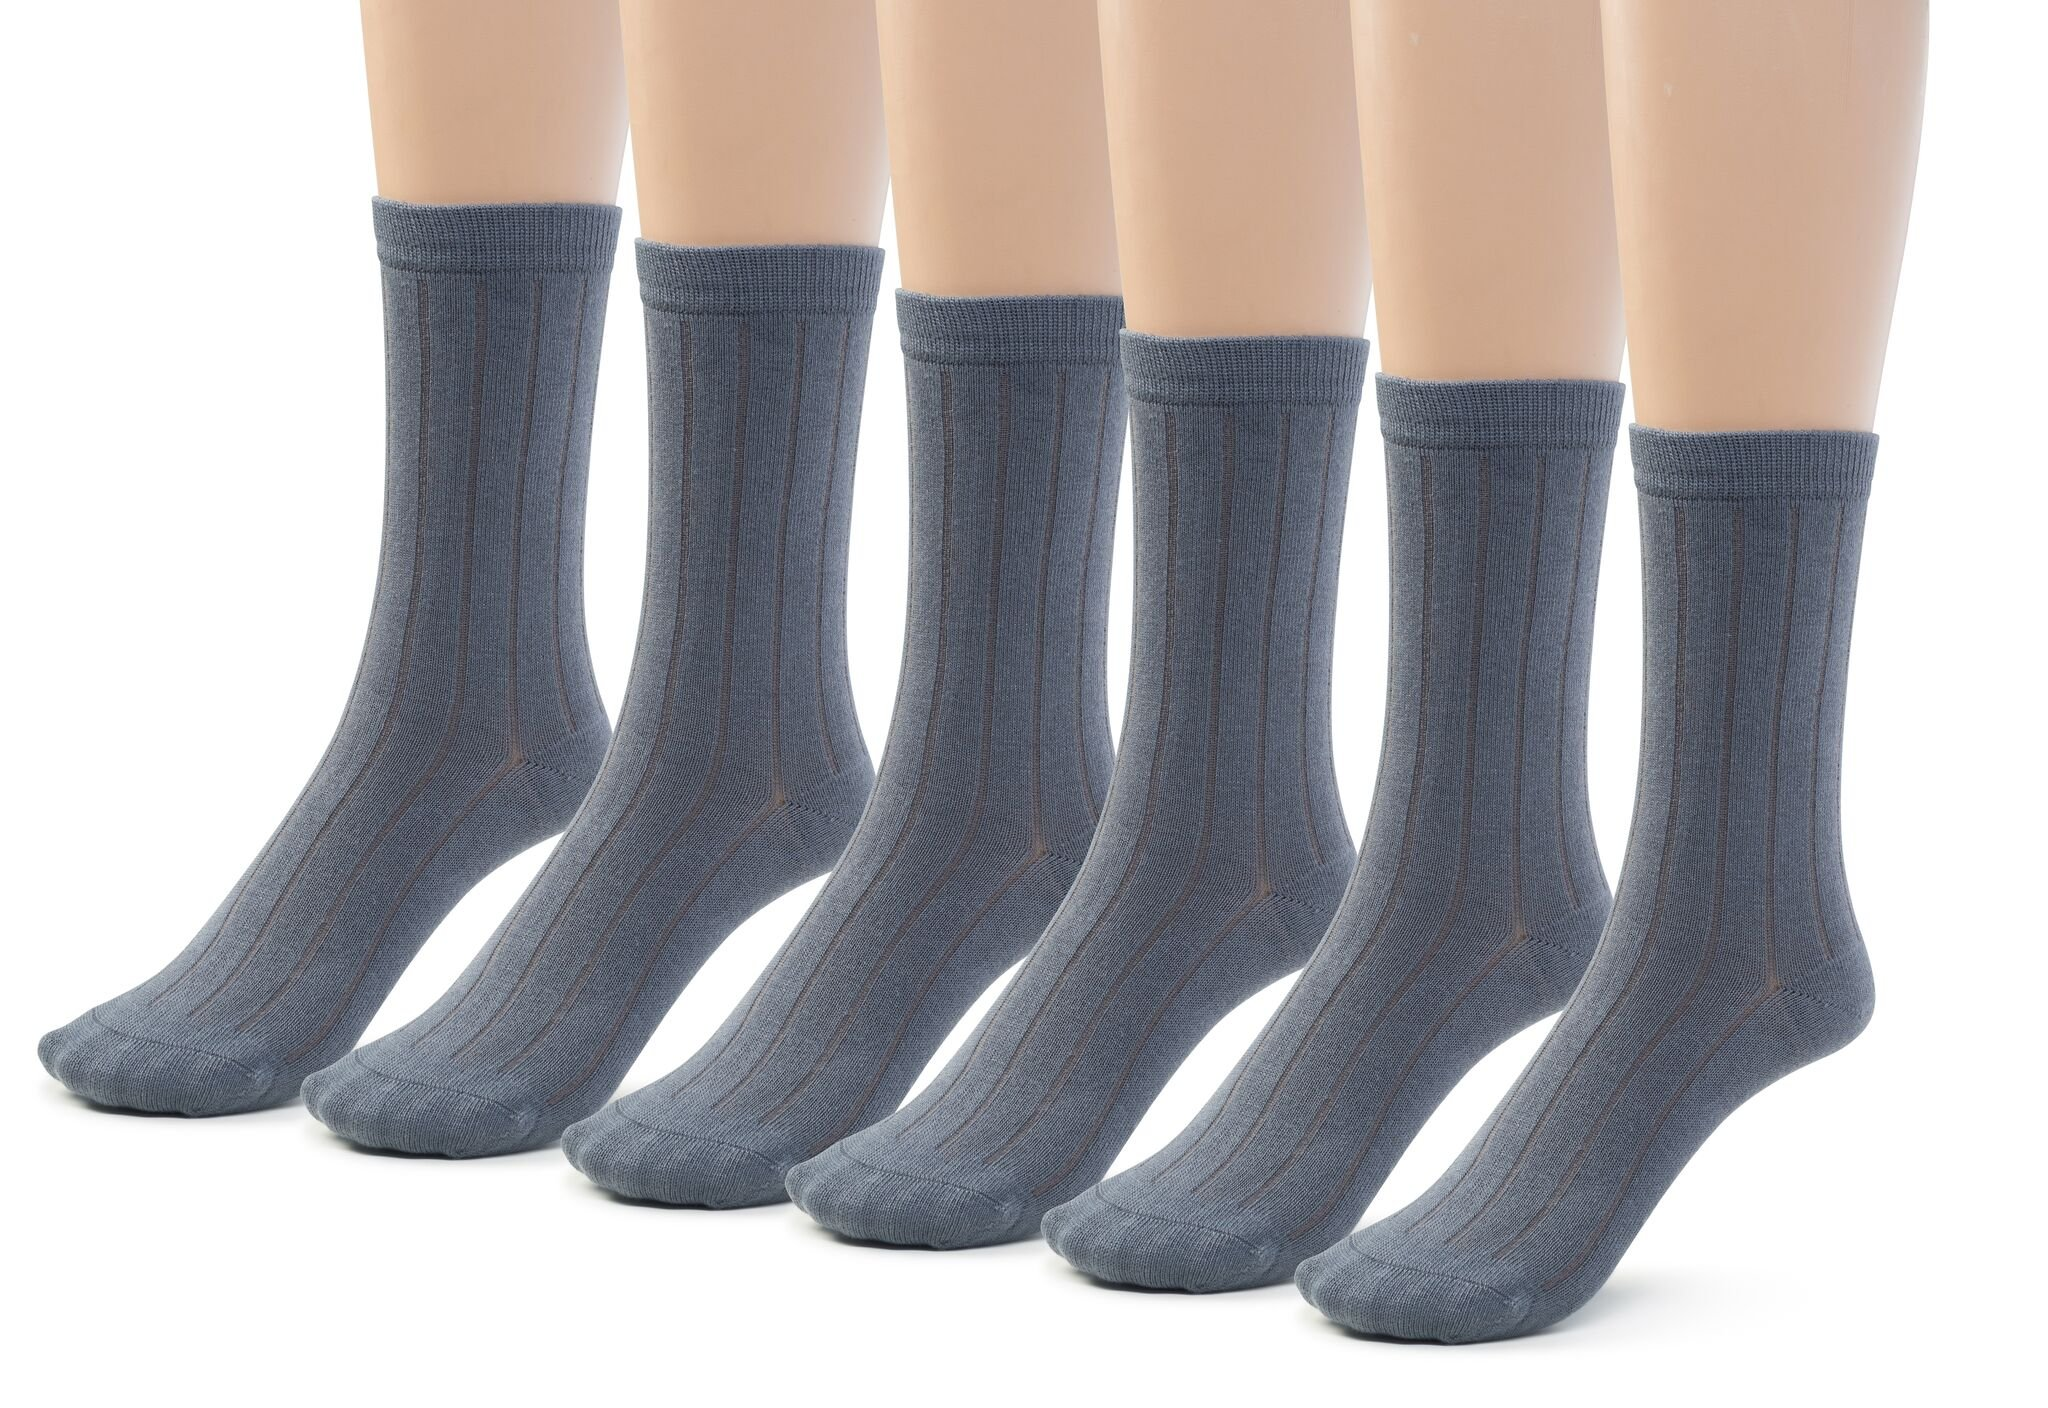 Silky Toes 6 Pk Bamboo Ribbed Boys Girls Crew Socks, Casual School Uniform Basic Socks (Large (9-11), Heather Grey (6 Pack))